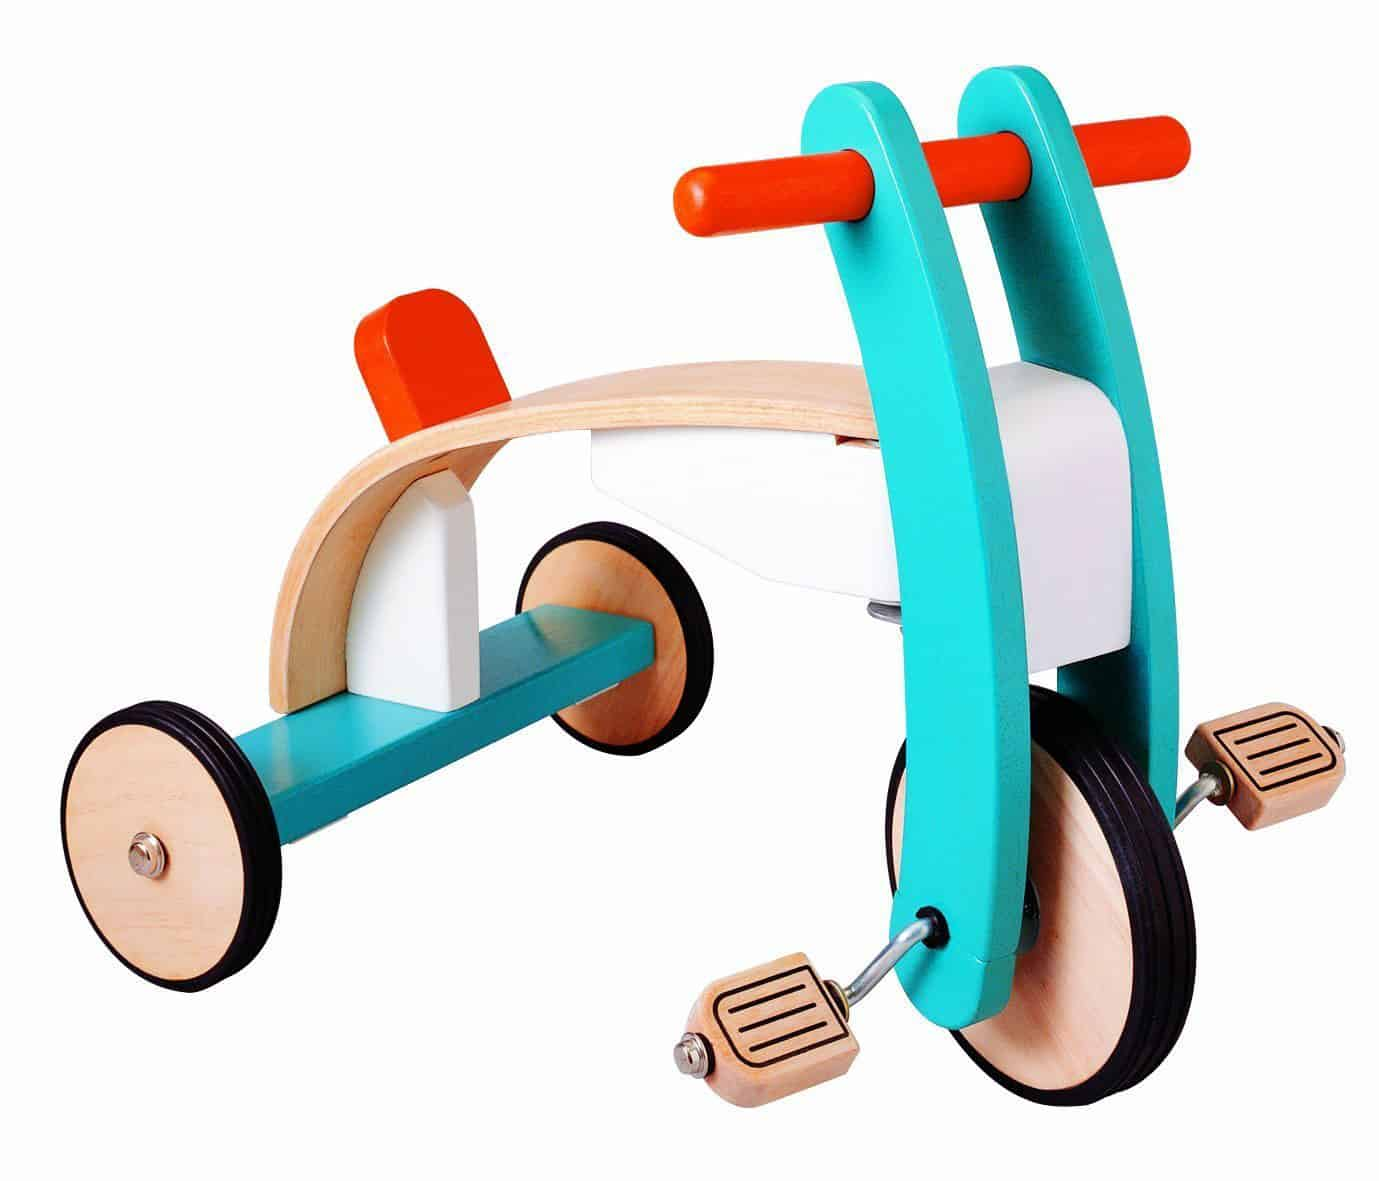 8 starter wooden ride-on toys for toddlers